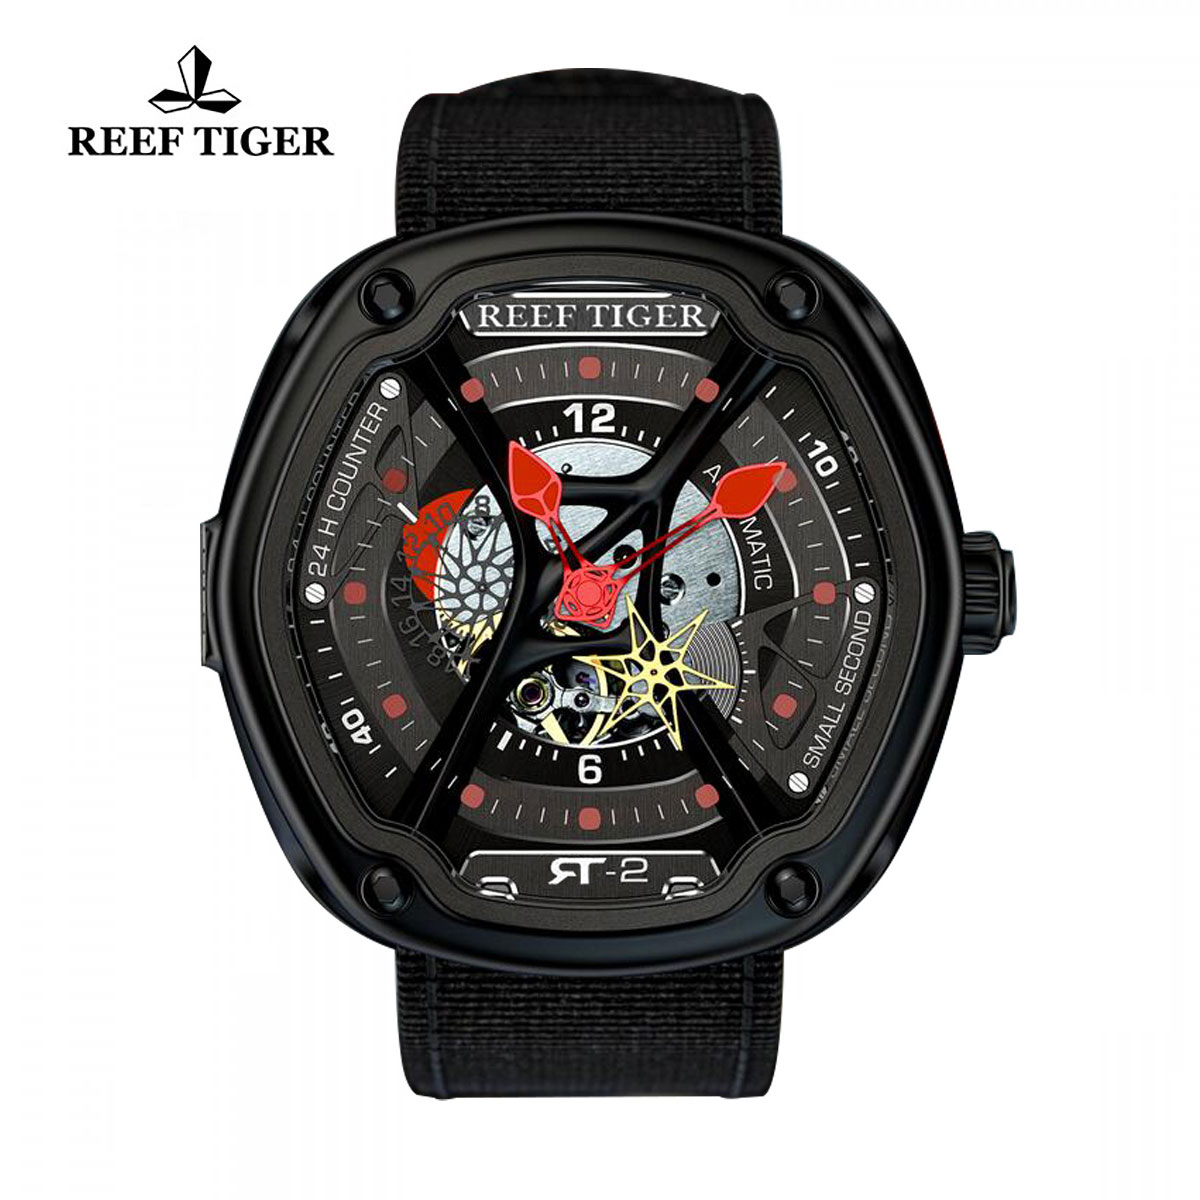 Reef Tiger Gaia's Light Sport Watches Automatic Watch PVD Case Skeleton Dial RGA90S7-BSB